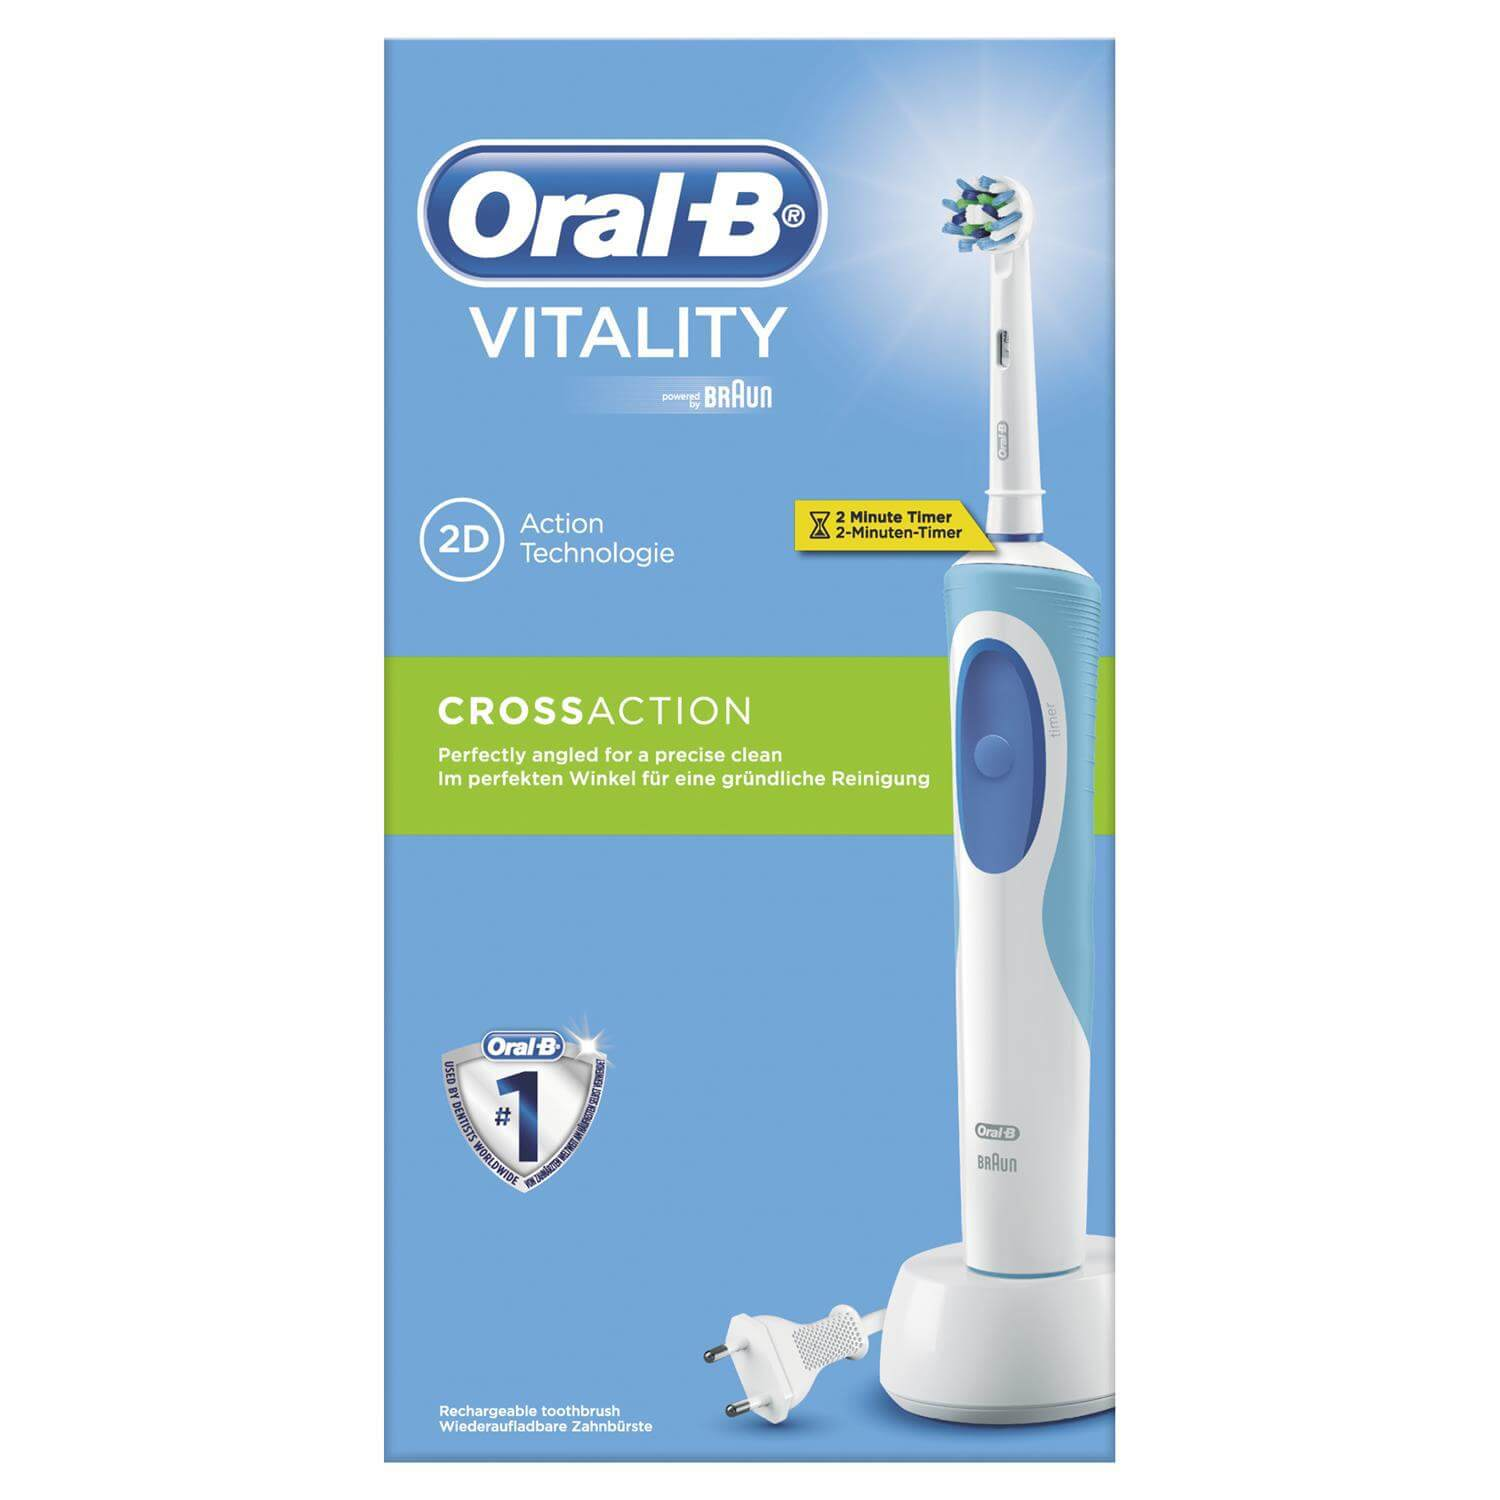 Oral-B Vitality Deluxe Επαναφορτιζόμενη Ηλεκτρική Οδοντόβουρτσα